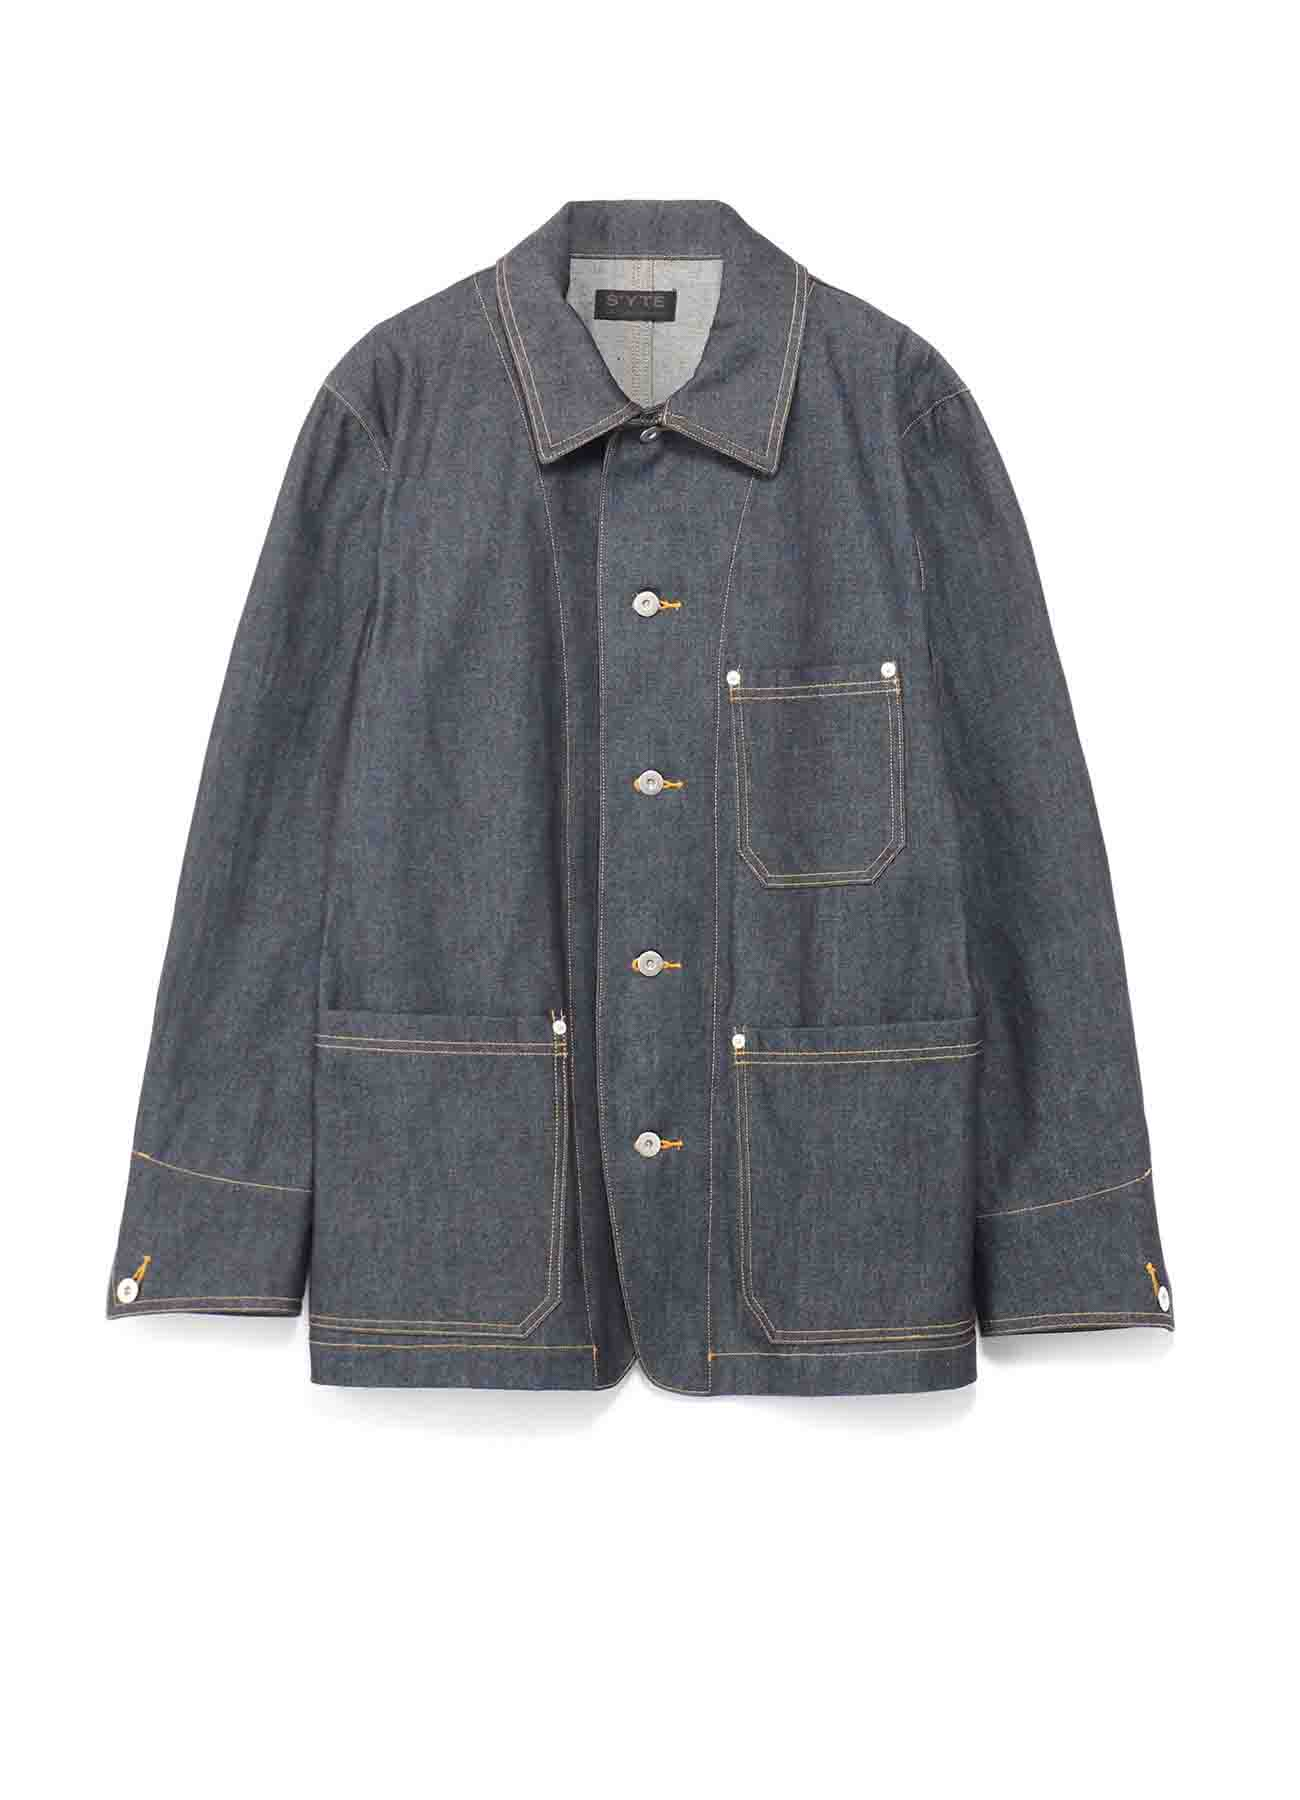 10 oz Denim Coveralls Jacket